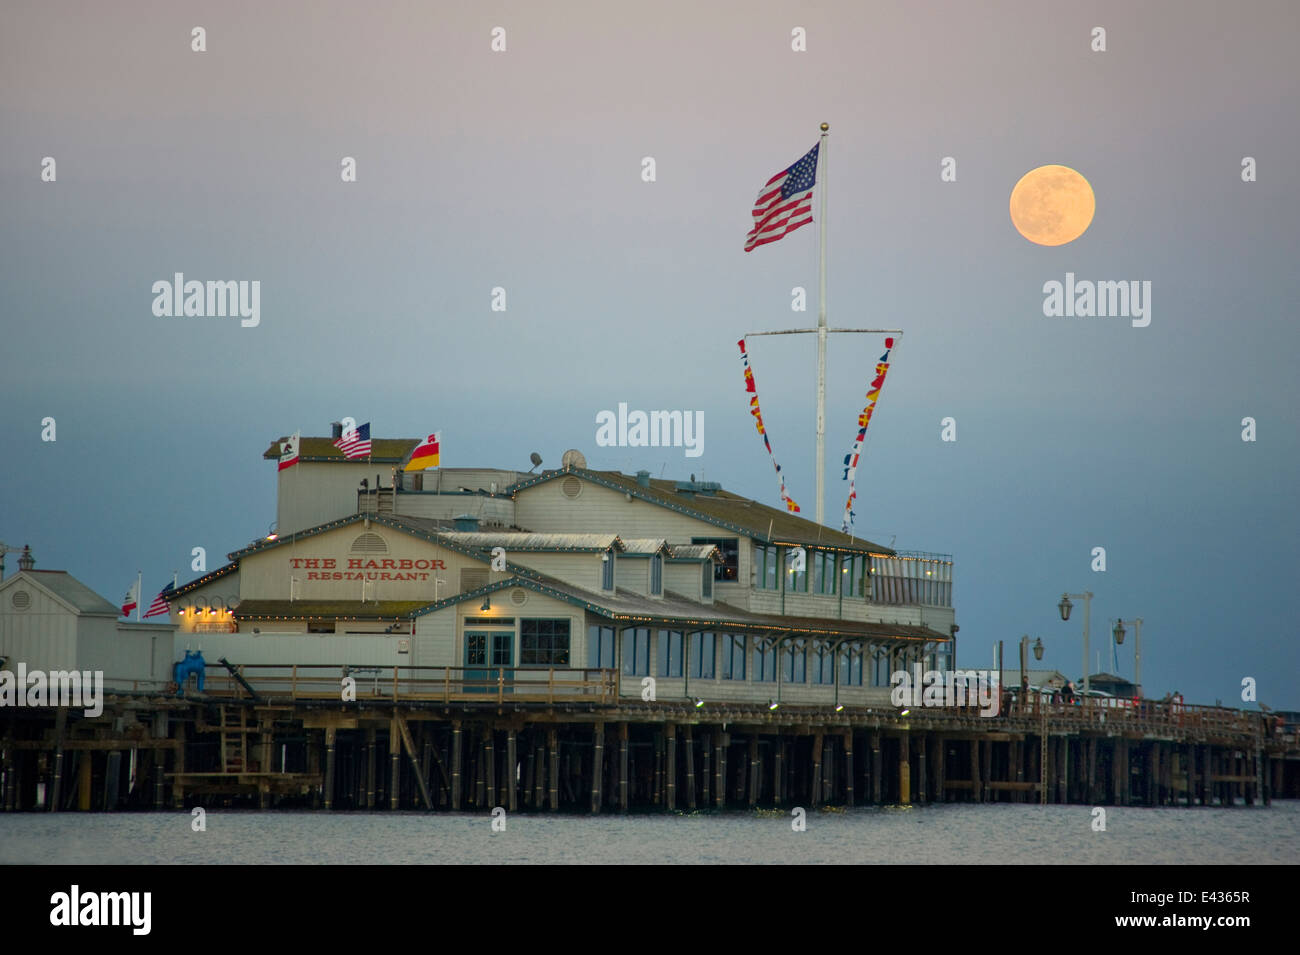 Full moon over pier in Santa Barbara, CA - Stock Image